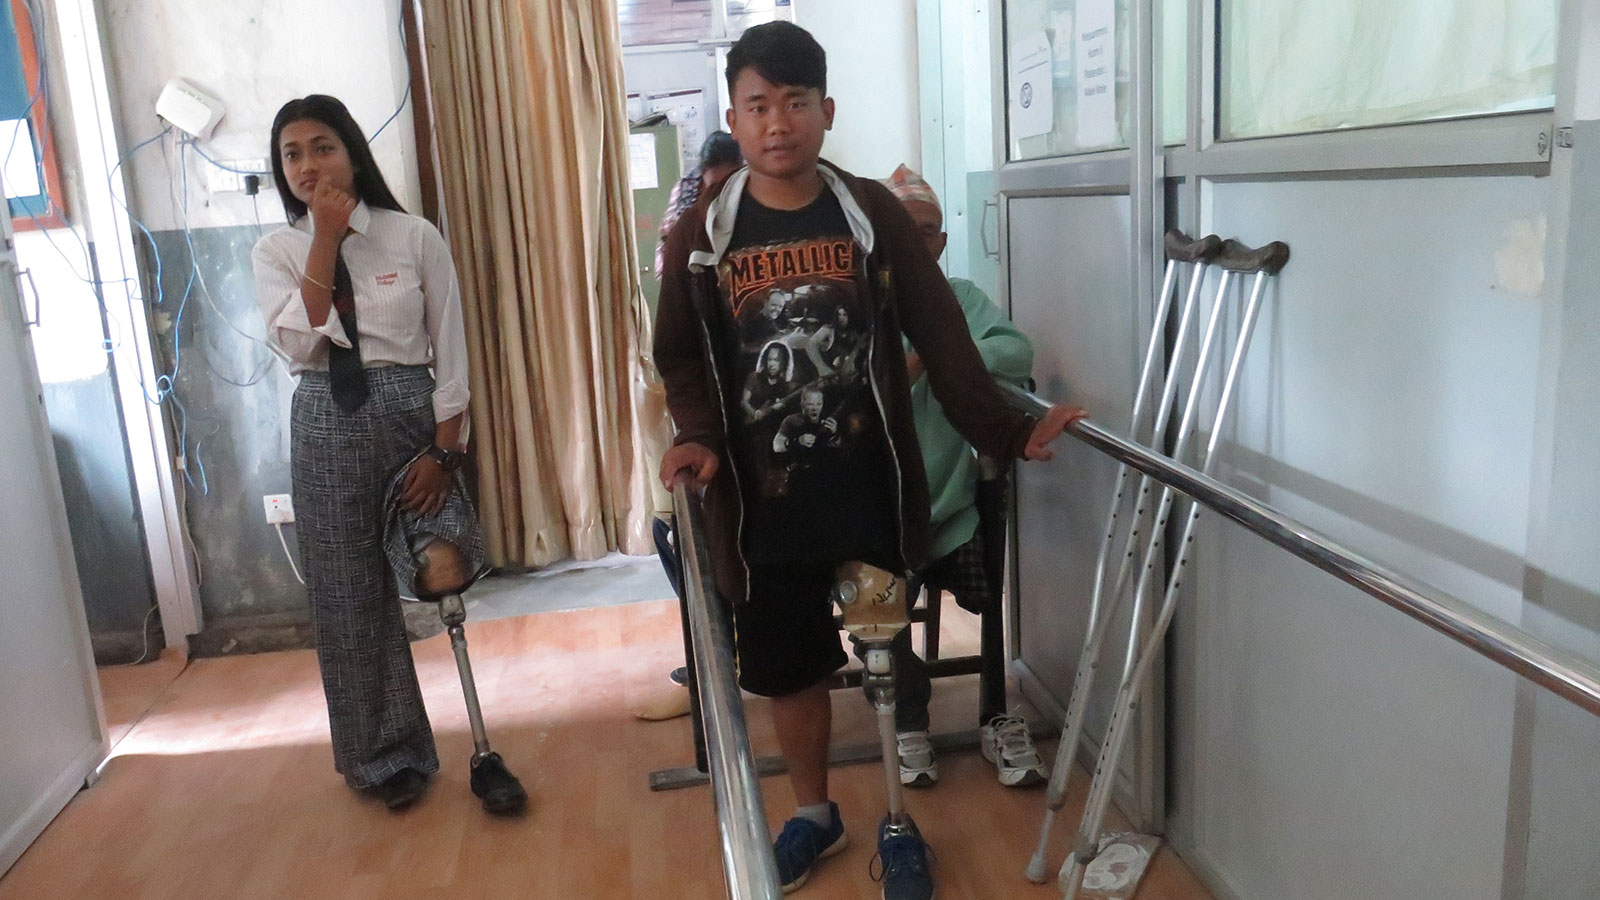 Two-beneficiaries-of-the-Nepal-quake-try-on-new-prosthetics-at-a-rehab-center-in-Nepal-which-is-supported-by-HI